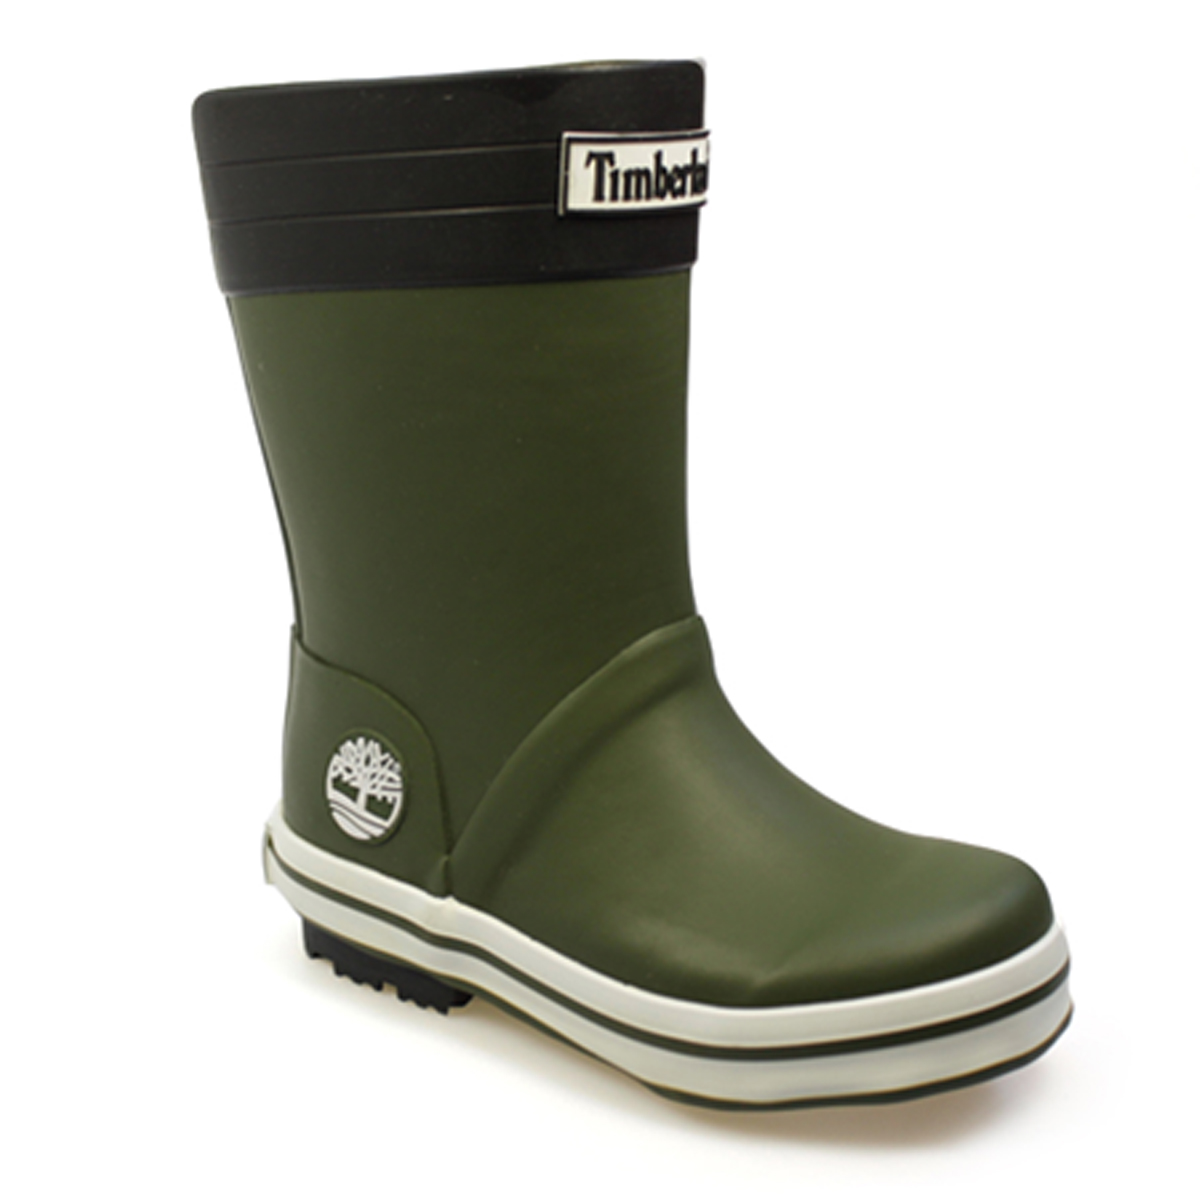 Find great deals on eBay for kids green wellies. Shop with confidence.